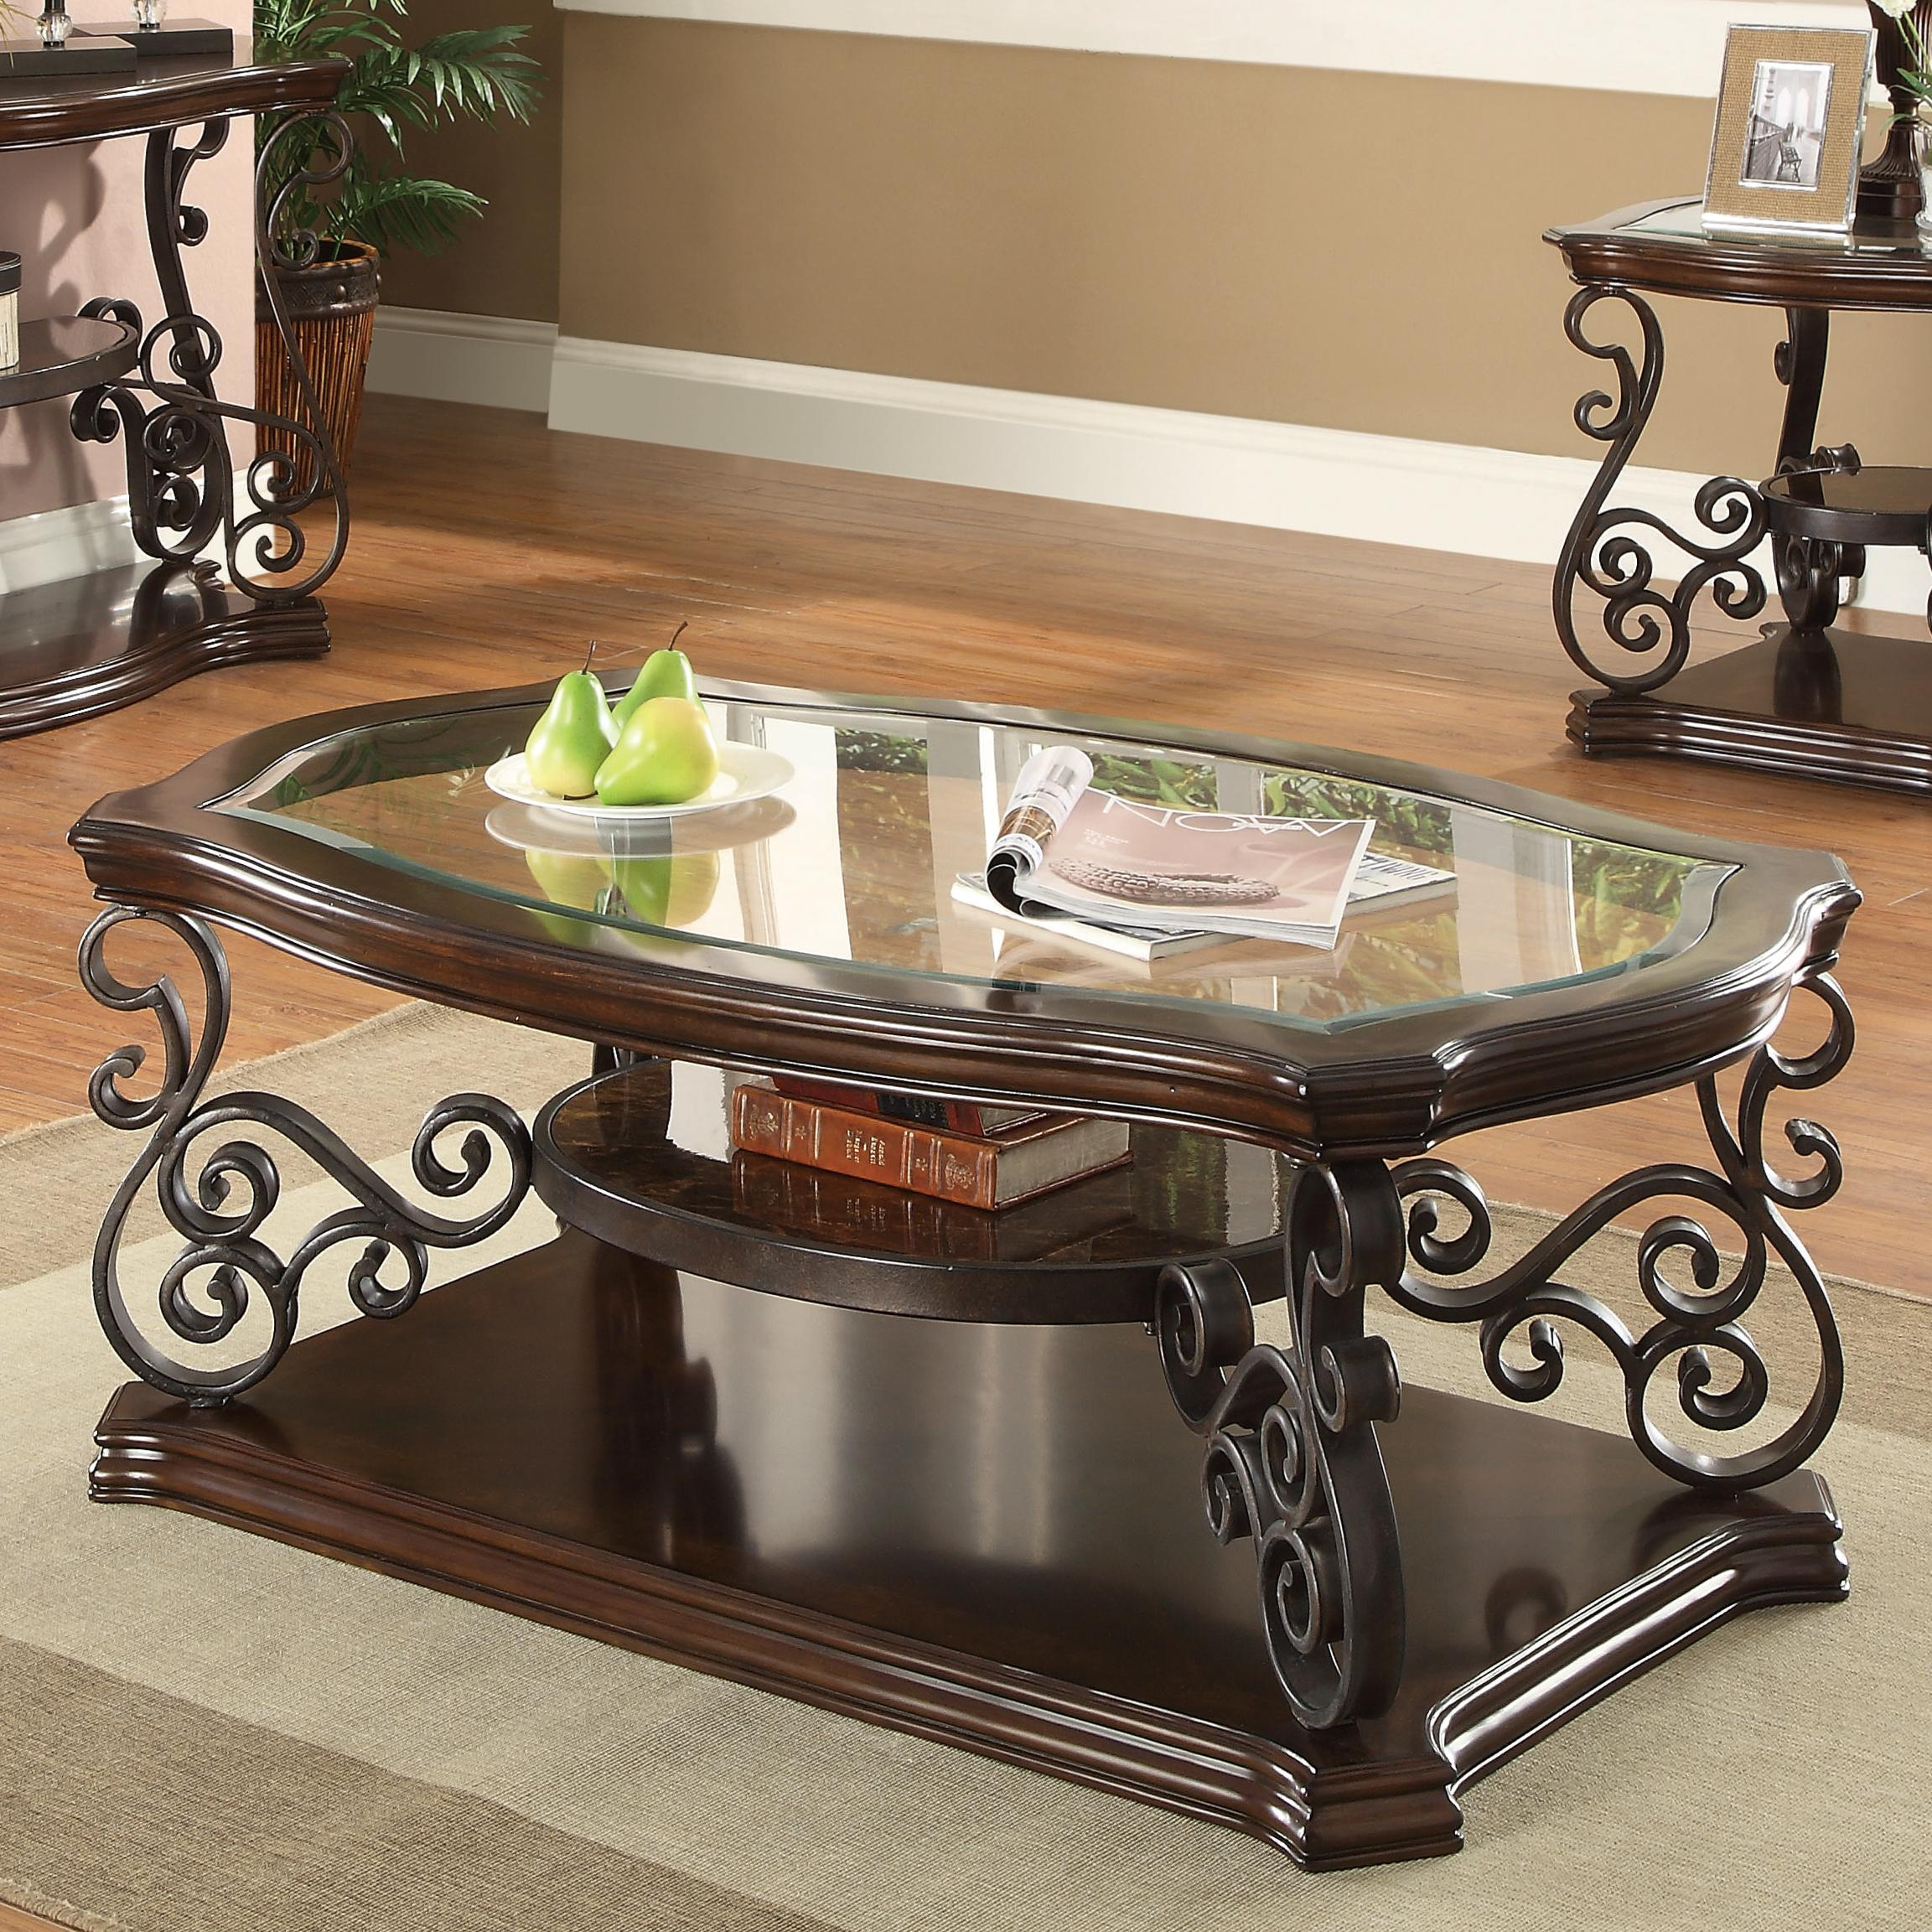 702448 traditional coffee table with tempered glass top & ornate metal scrollwork